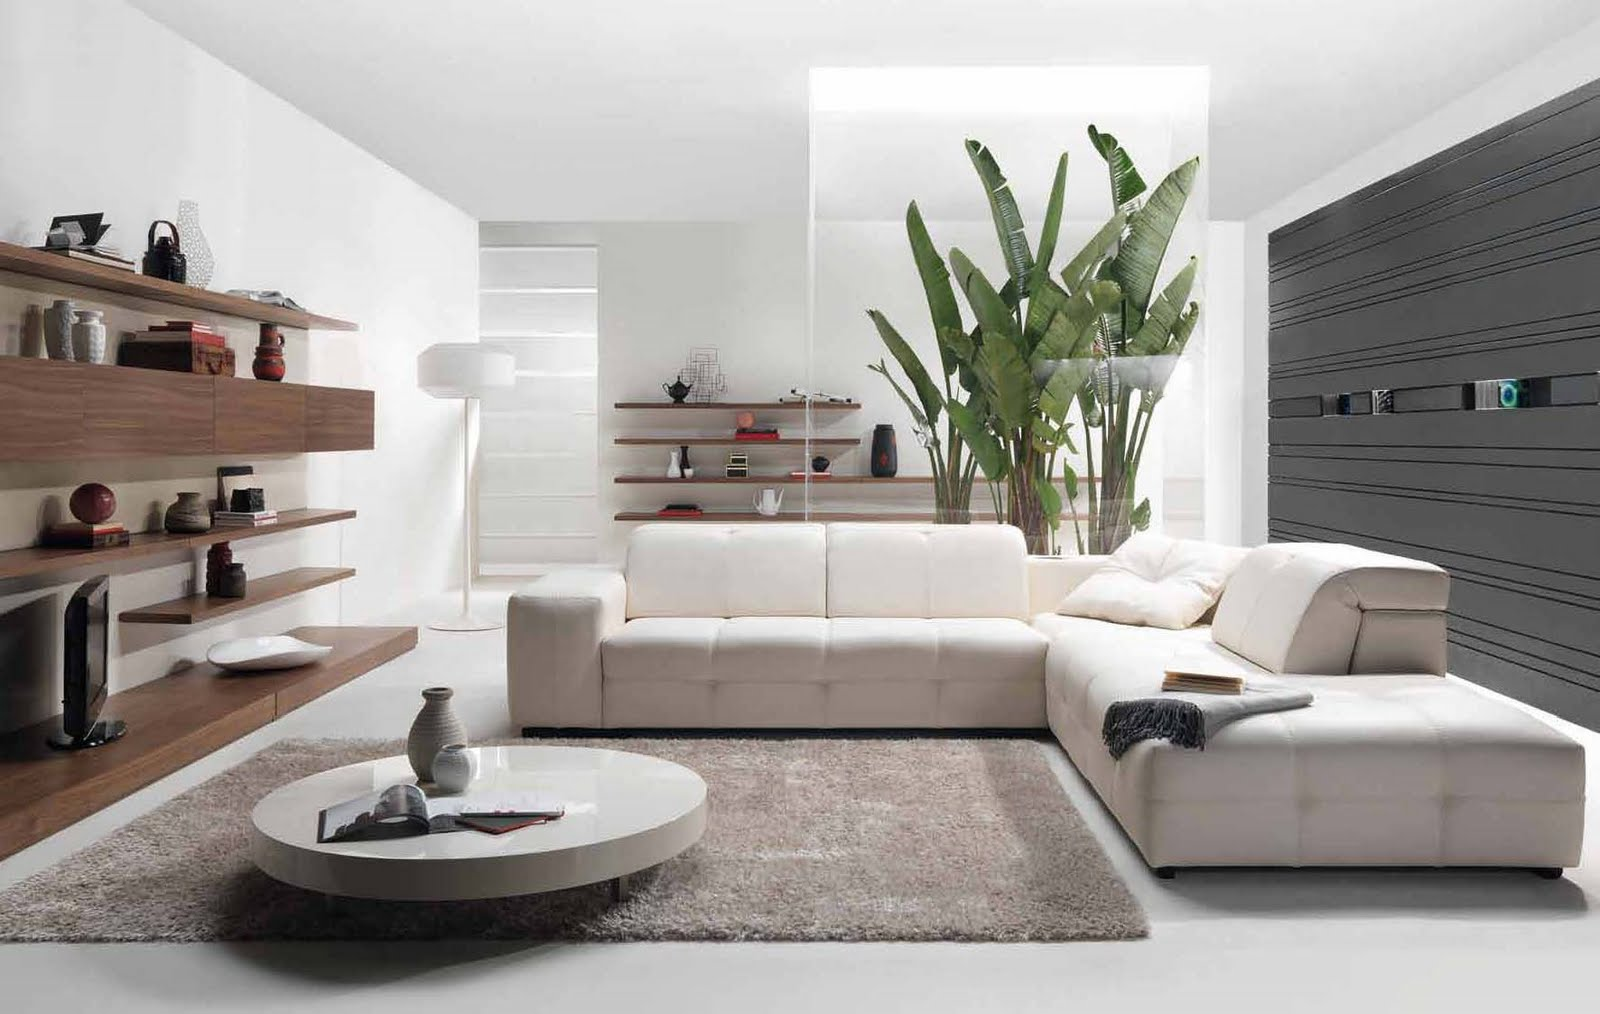 Designs Of Interior Living Rooms Of Future House Design Modern Living Room Interior  Design